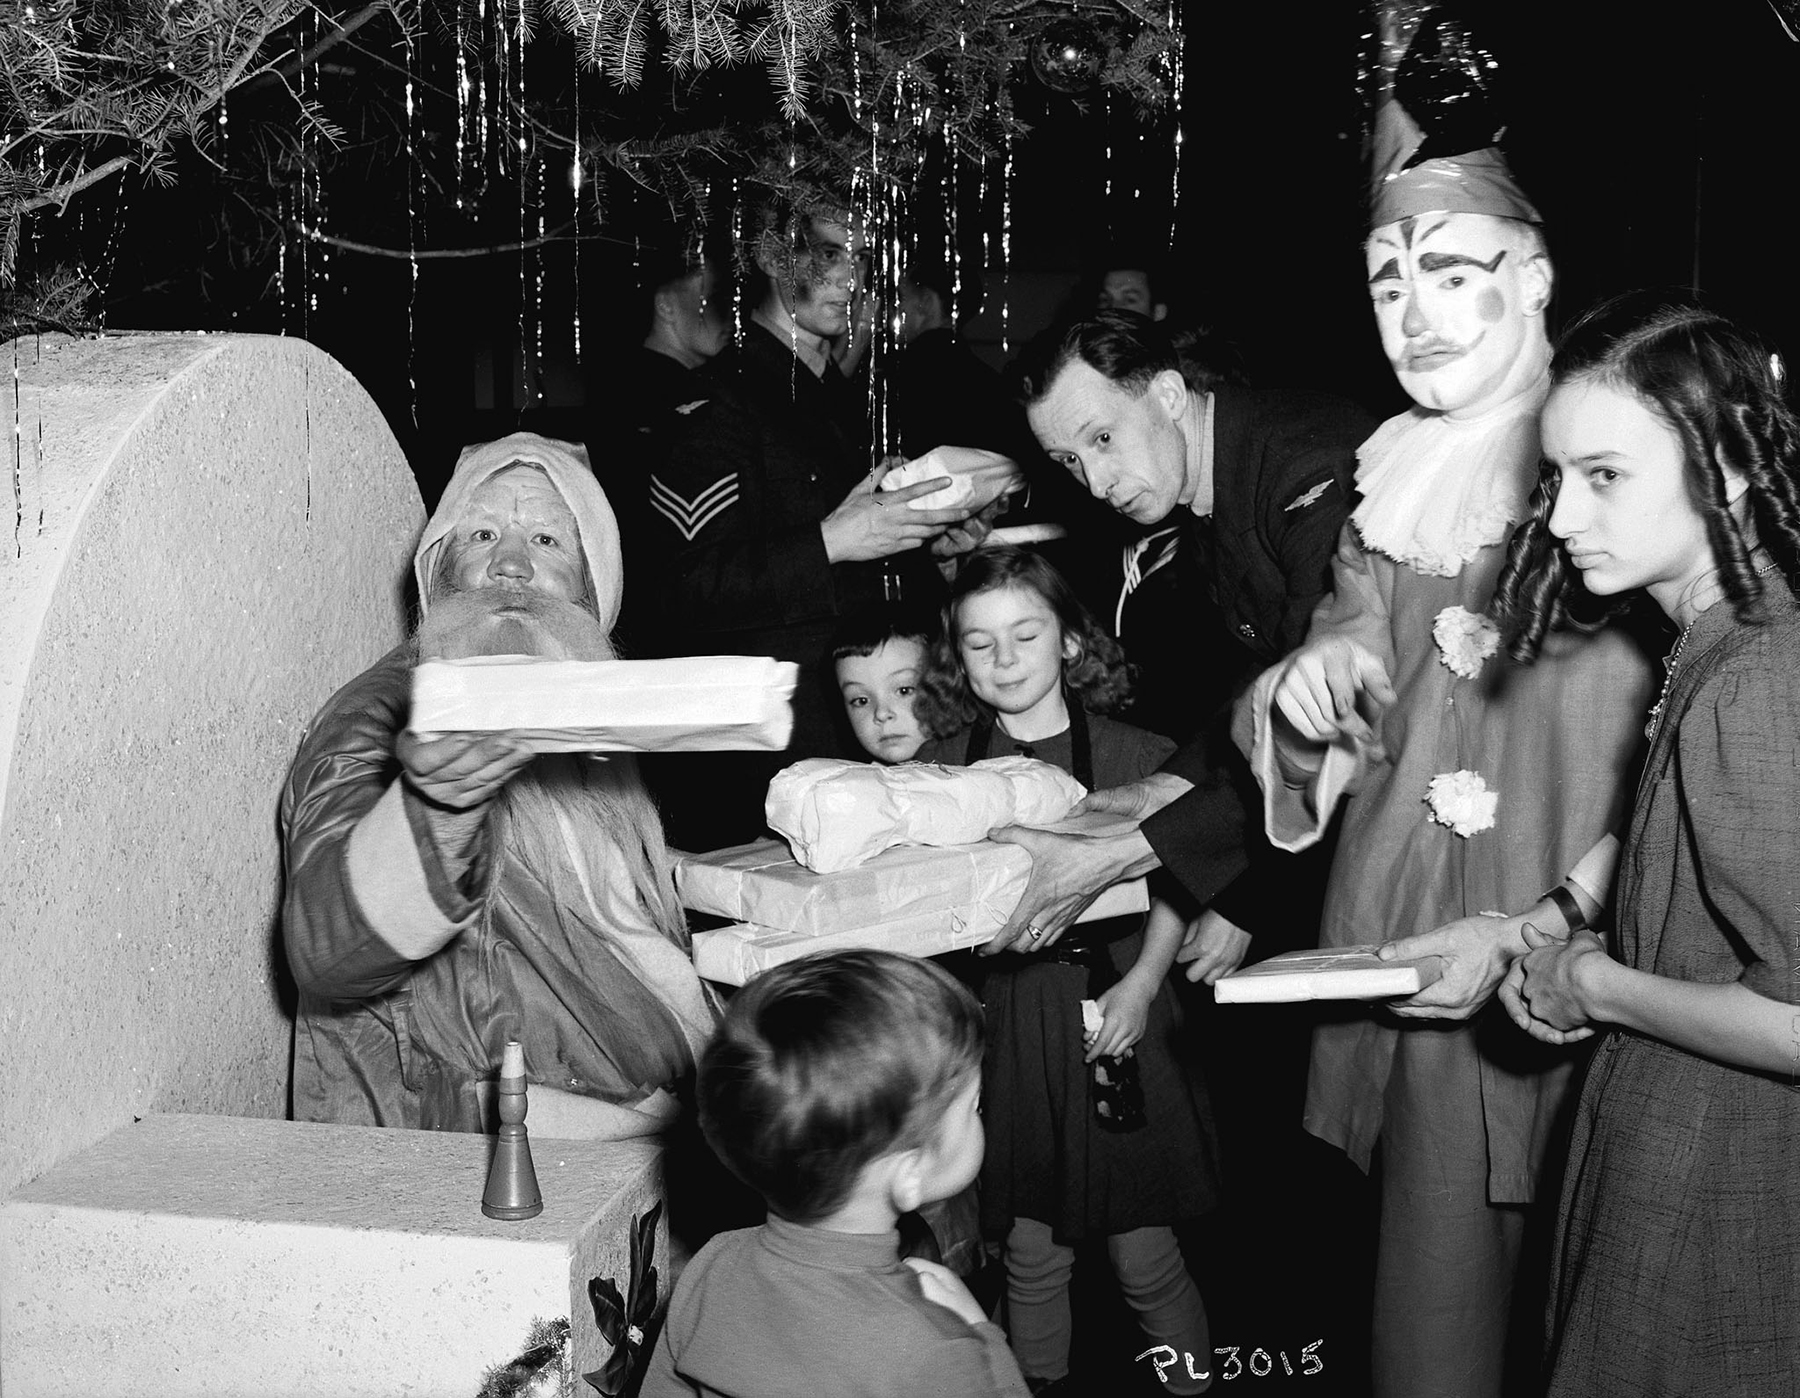 The line comes to an abrupt stop as Santa offers a gift to the photographer during the December 20, 1940, Children's Christmas Party thrown by Royal Canadian Air Force personnel at RCAF Station Rockcliffe, just east of Ottawa, Ontario. PHOTO: DND Archives, PL-3015